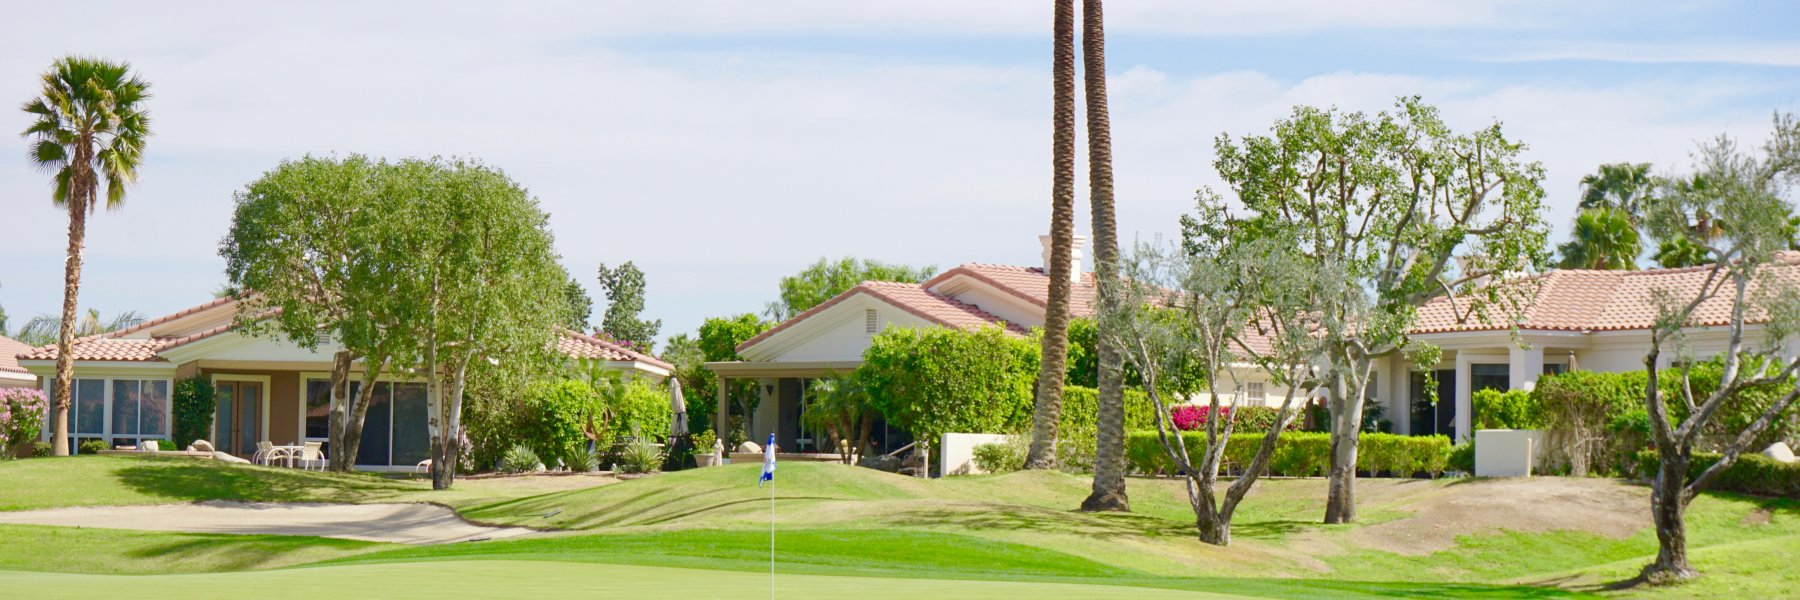 La Quinta Fairways is a community of homes in La Quinta California